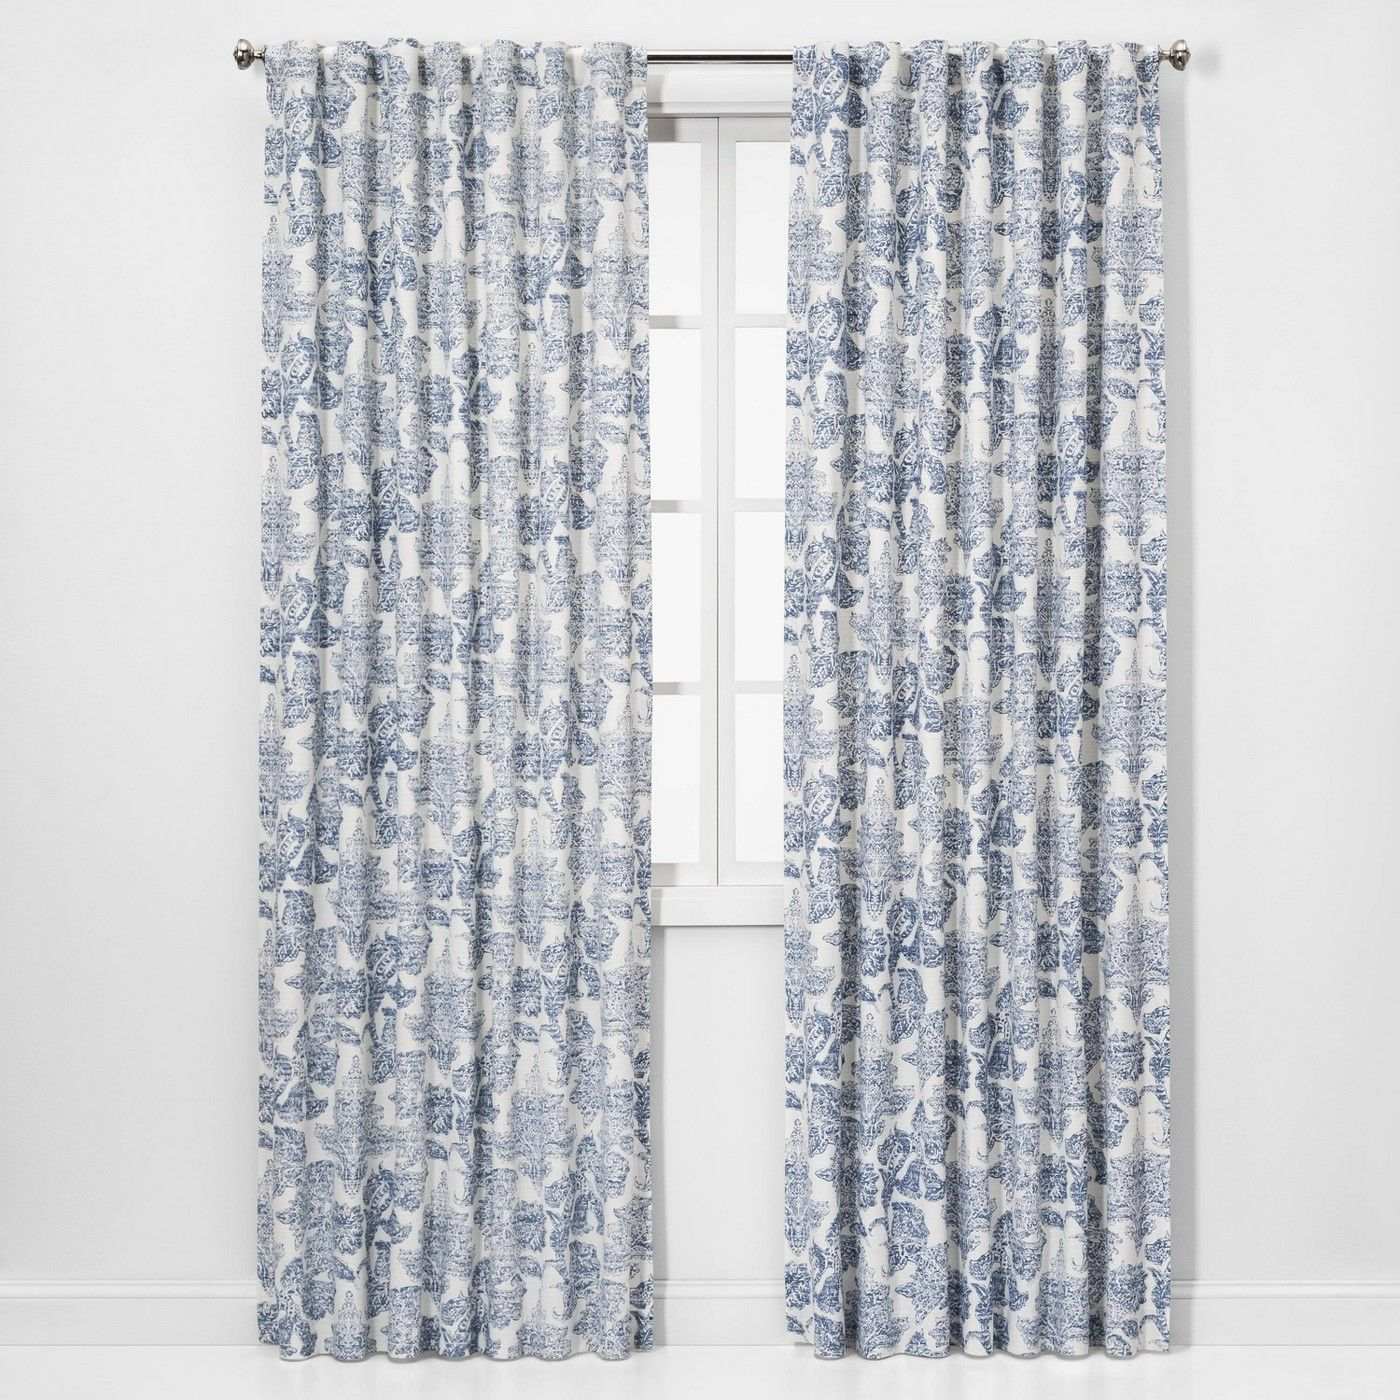 Charade Floral Light Filtering Curtain Panels Threshold Panel